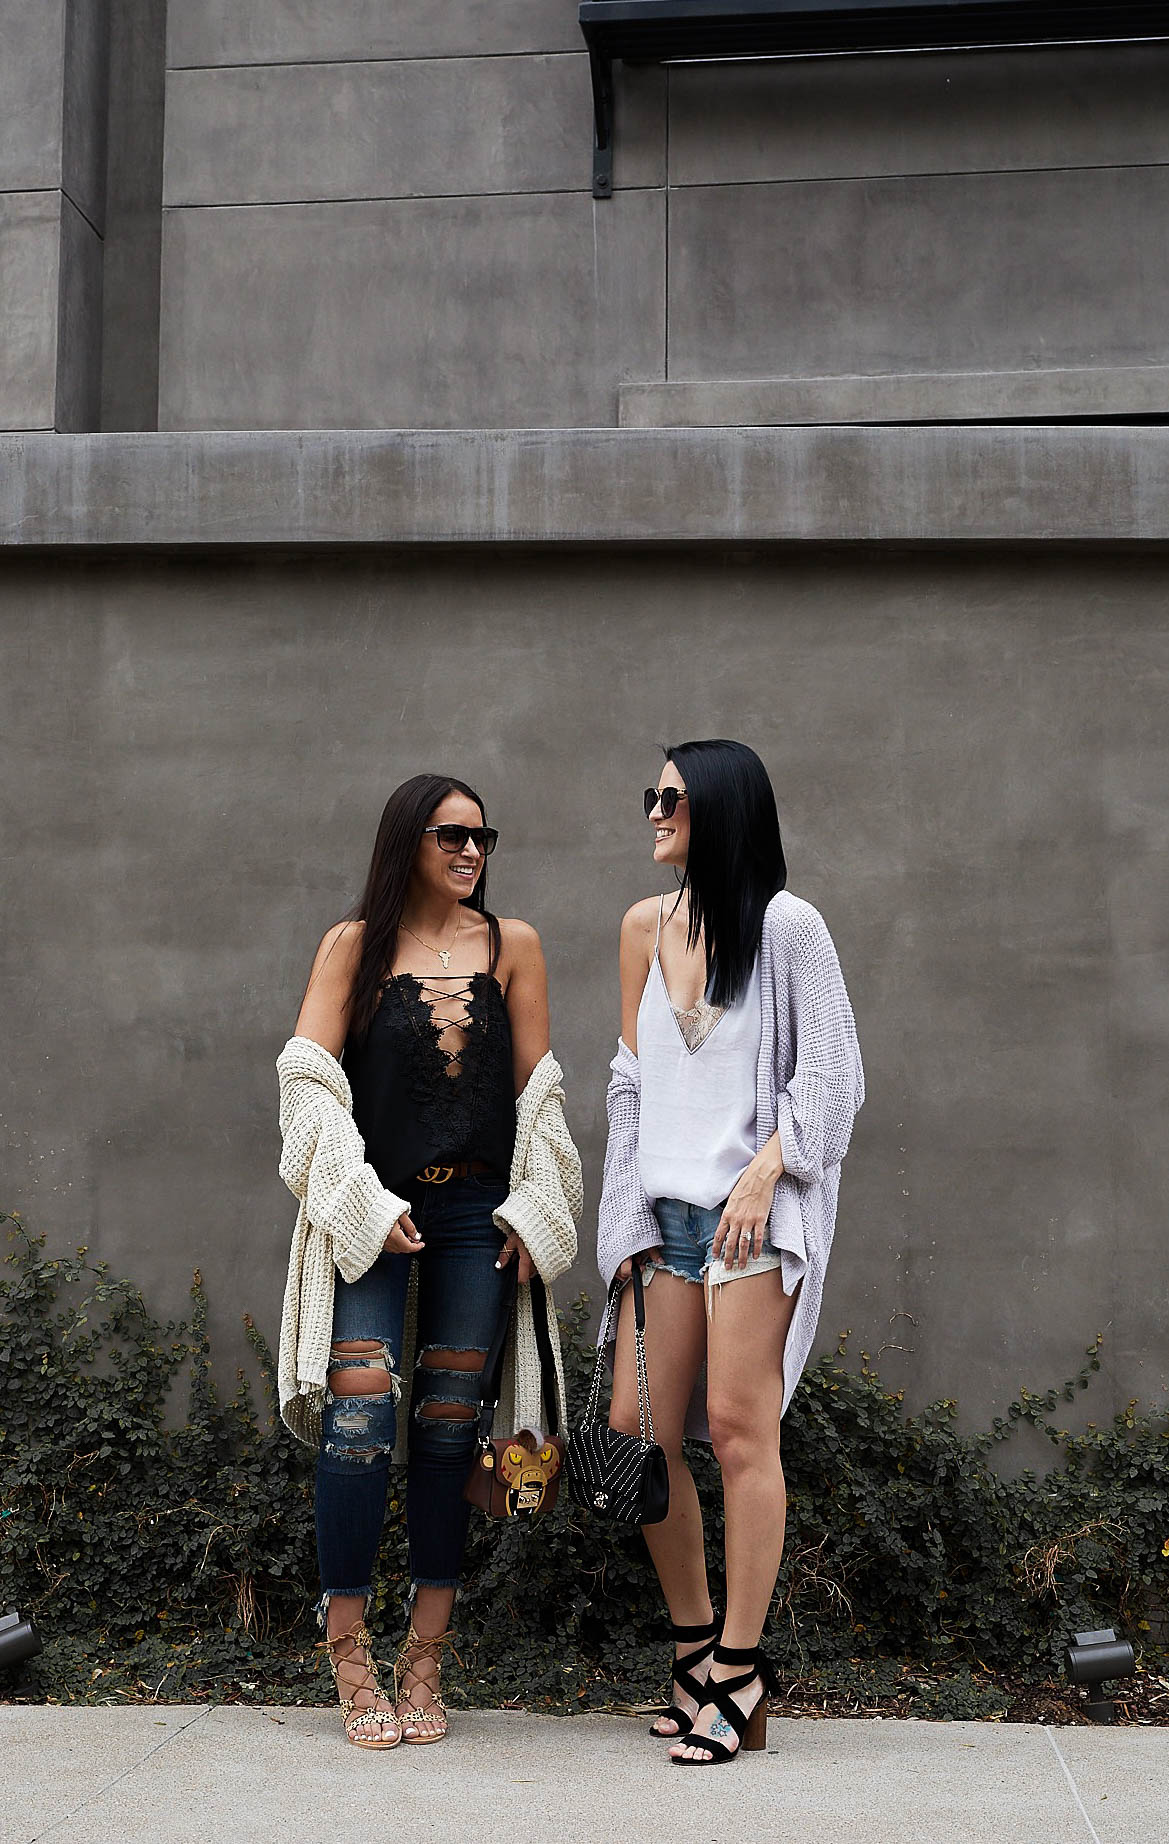 Austin Blogger DTKAustin is talking about the importance of having an amazing best friend in the industry you work in. - The Importance of Strong Friendships by popular Austin blogger Dressed to Kill